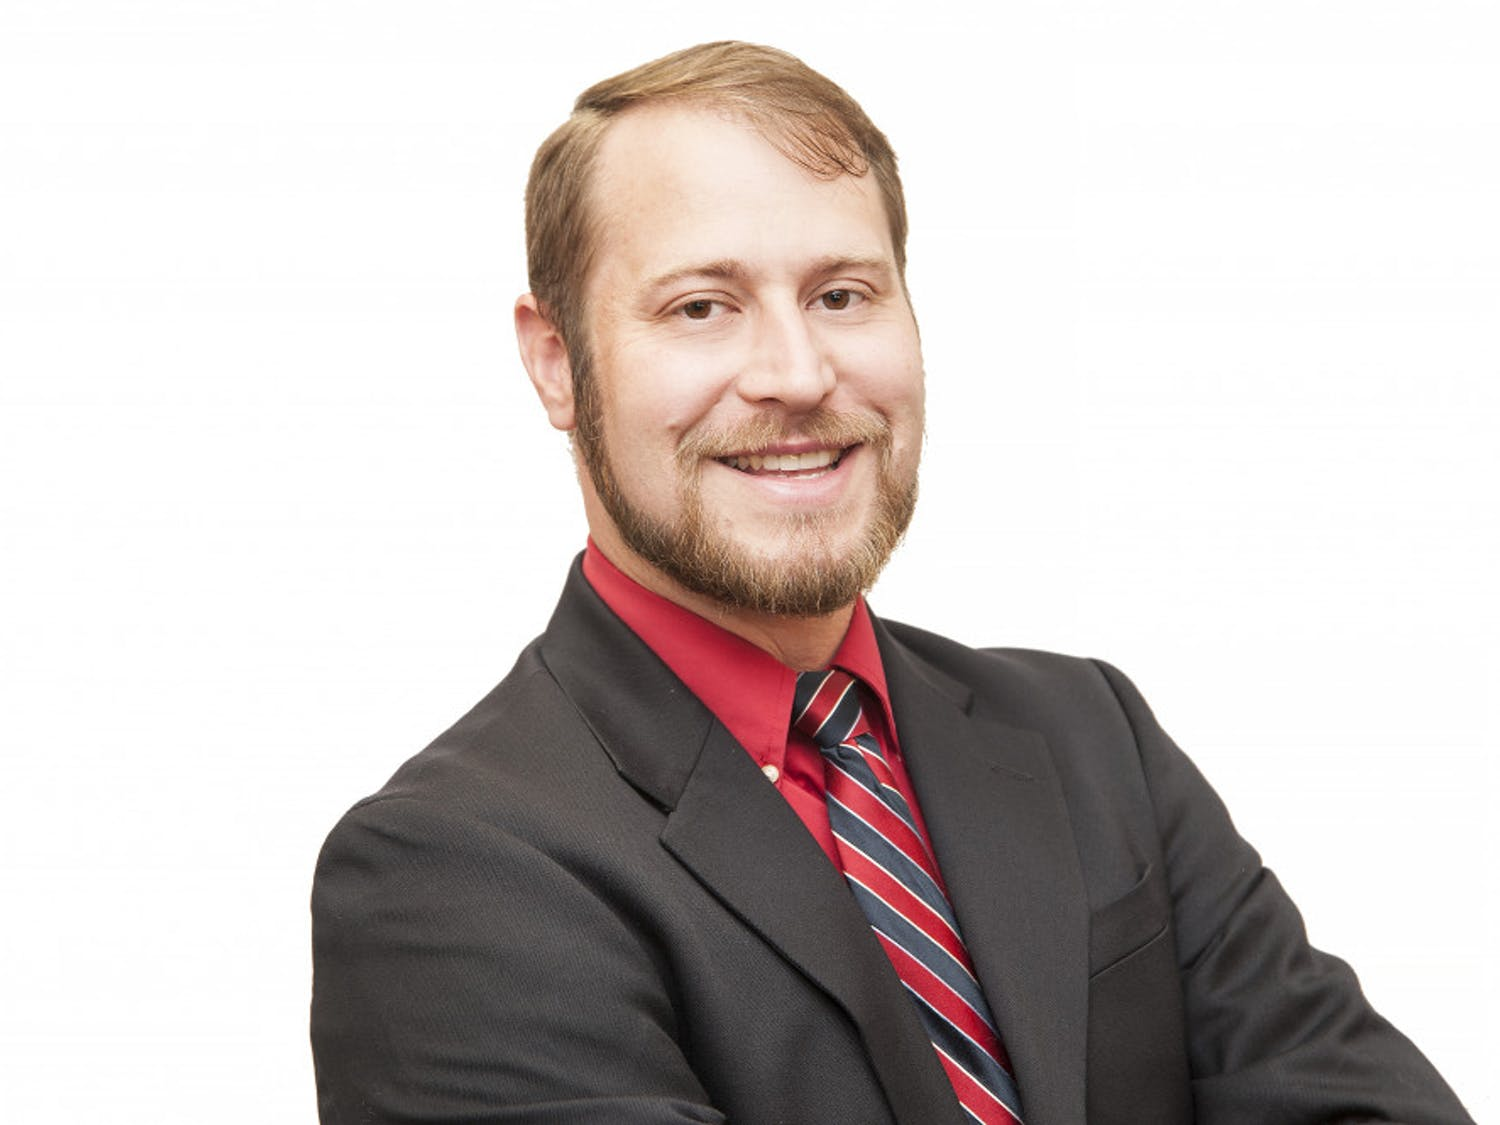 Chase Meyer, a UF political science professor